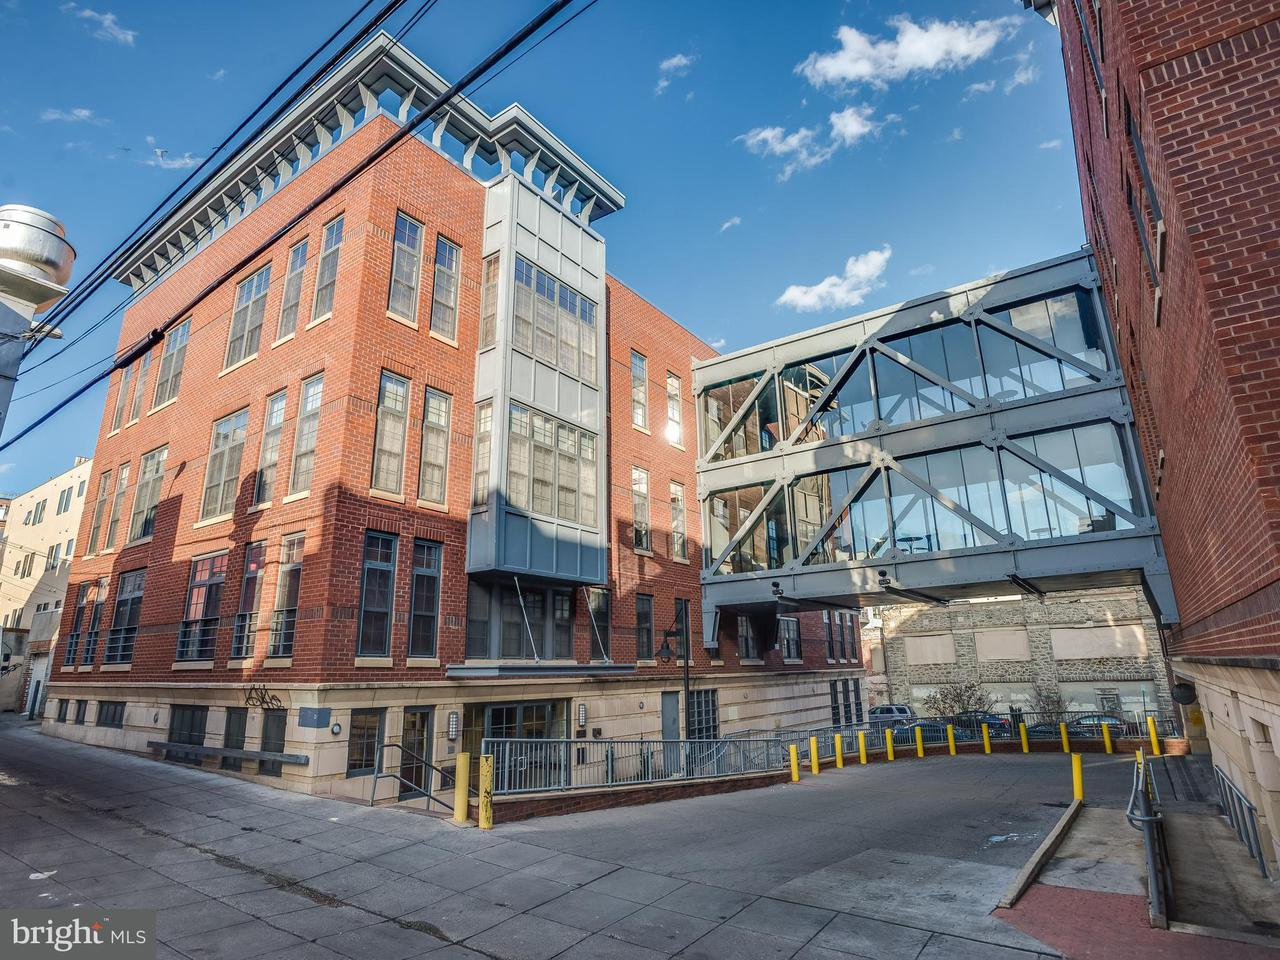 Condominium for Sale at 2328 Champlain St Nw #321 2328 Champlain St Nw #321 Washington, District Of Columbia 20009 United States